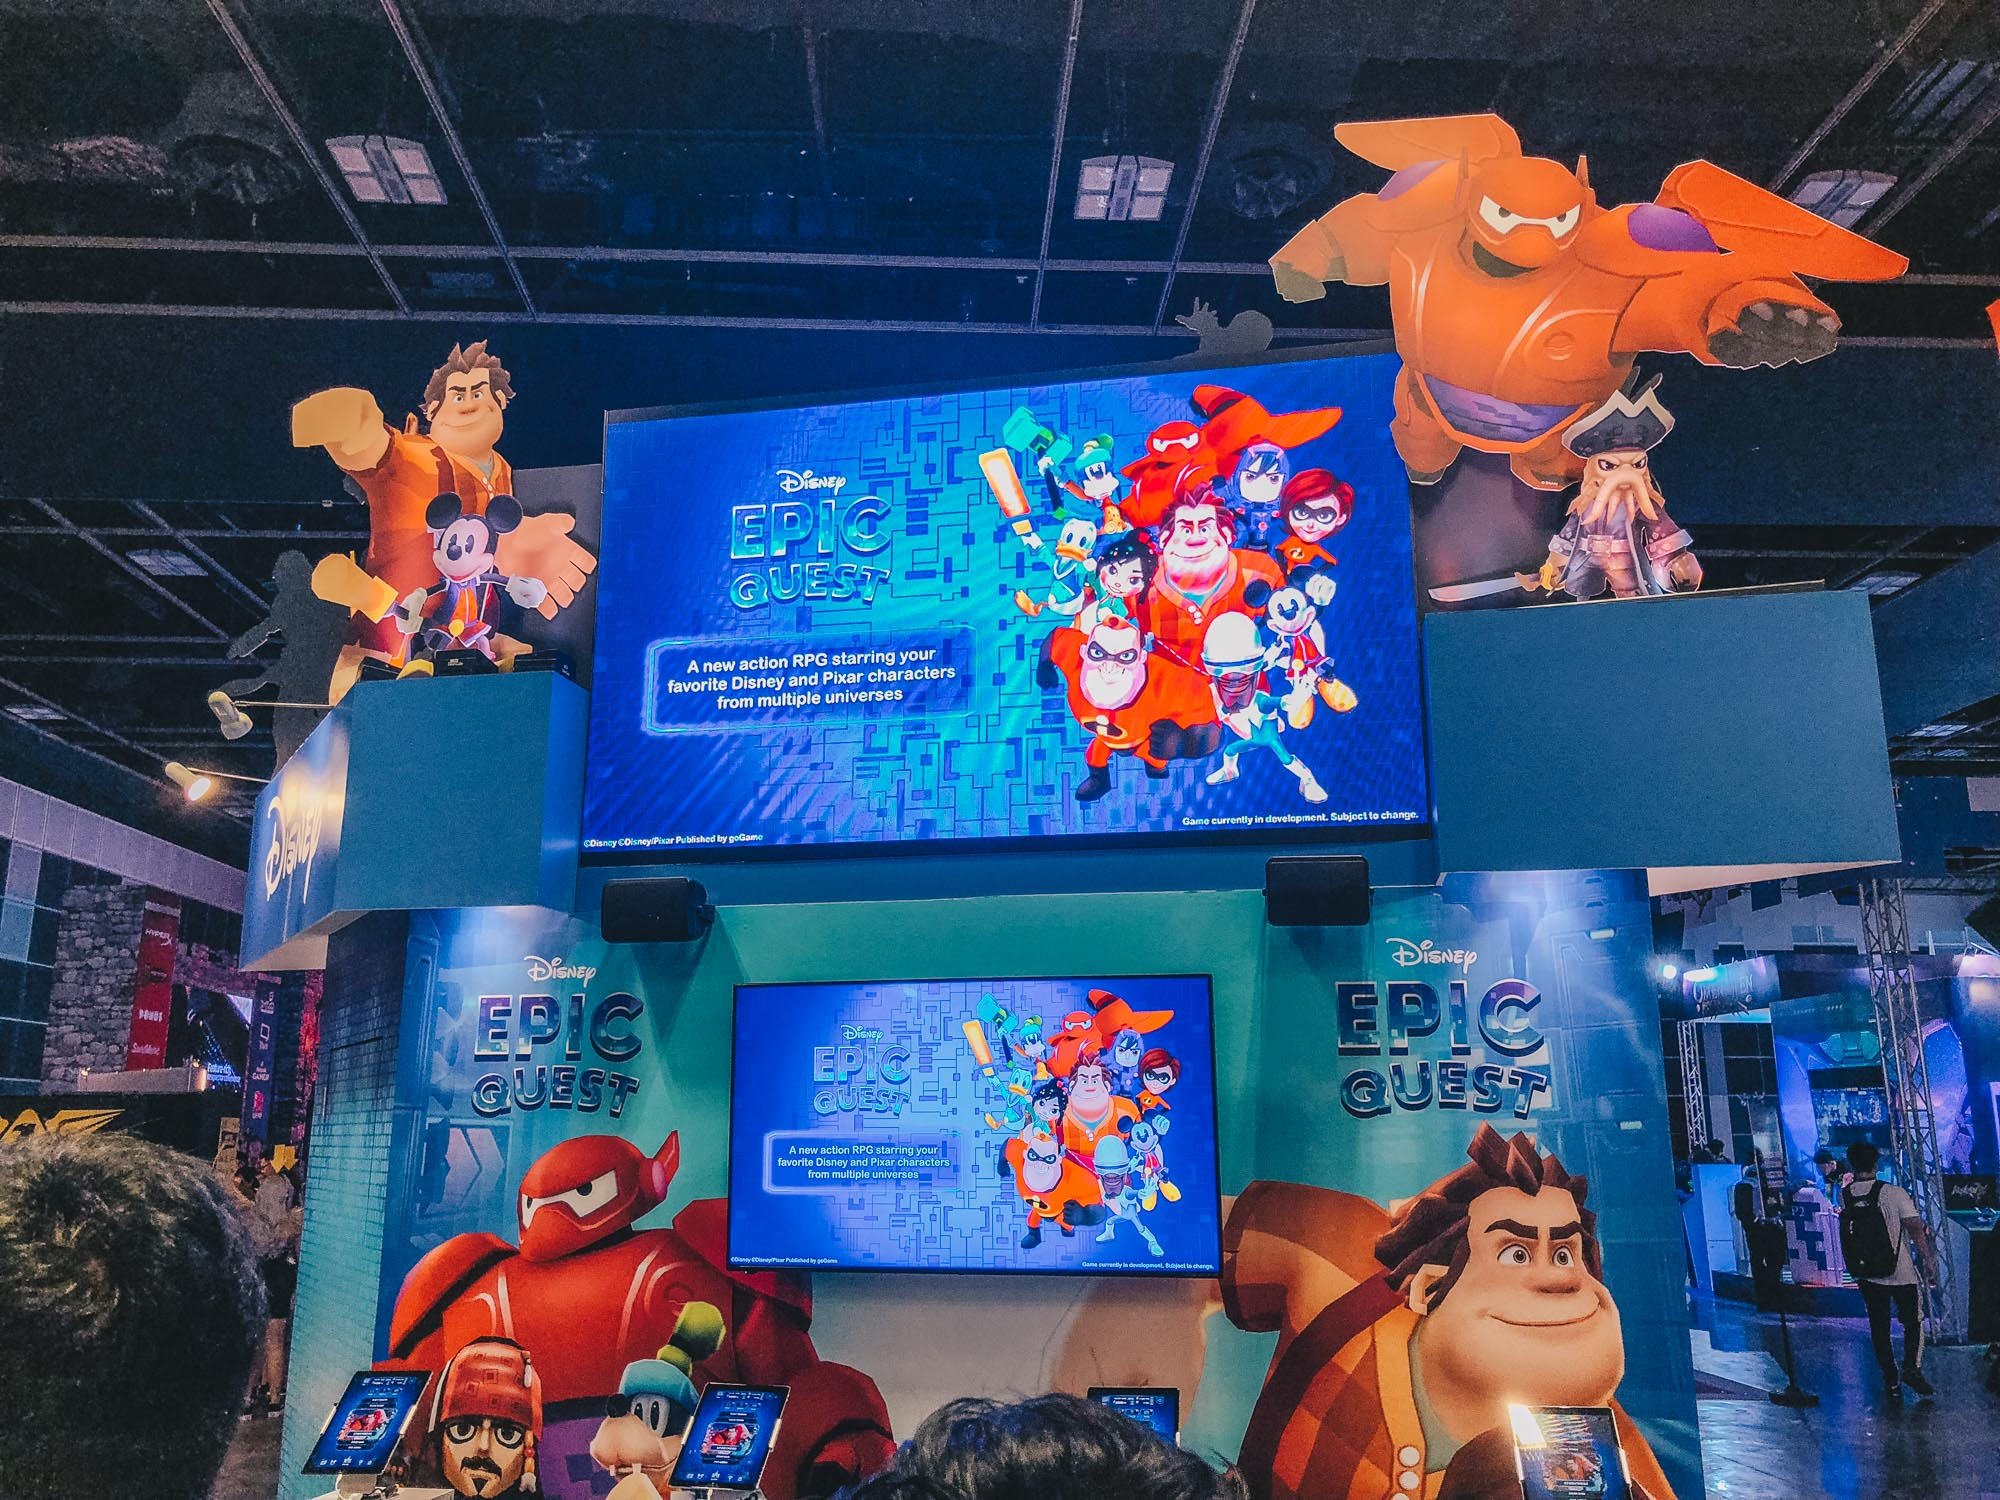 Disney Epic Quest - Disney's first Mobile Game developed in Singapore to launch in 2019